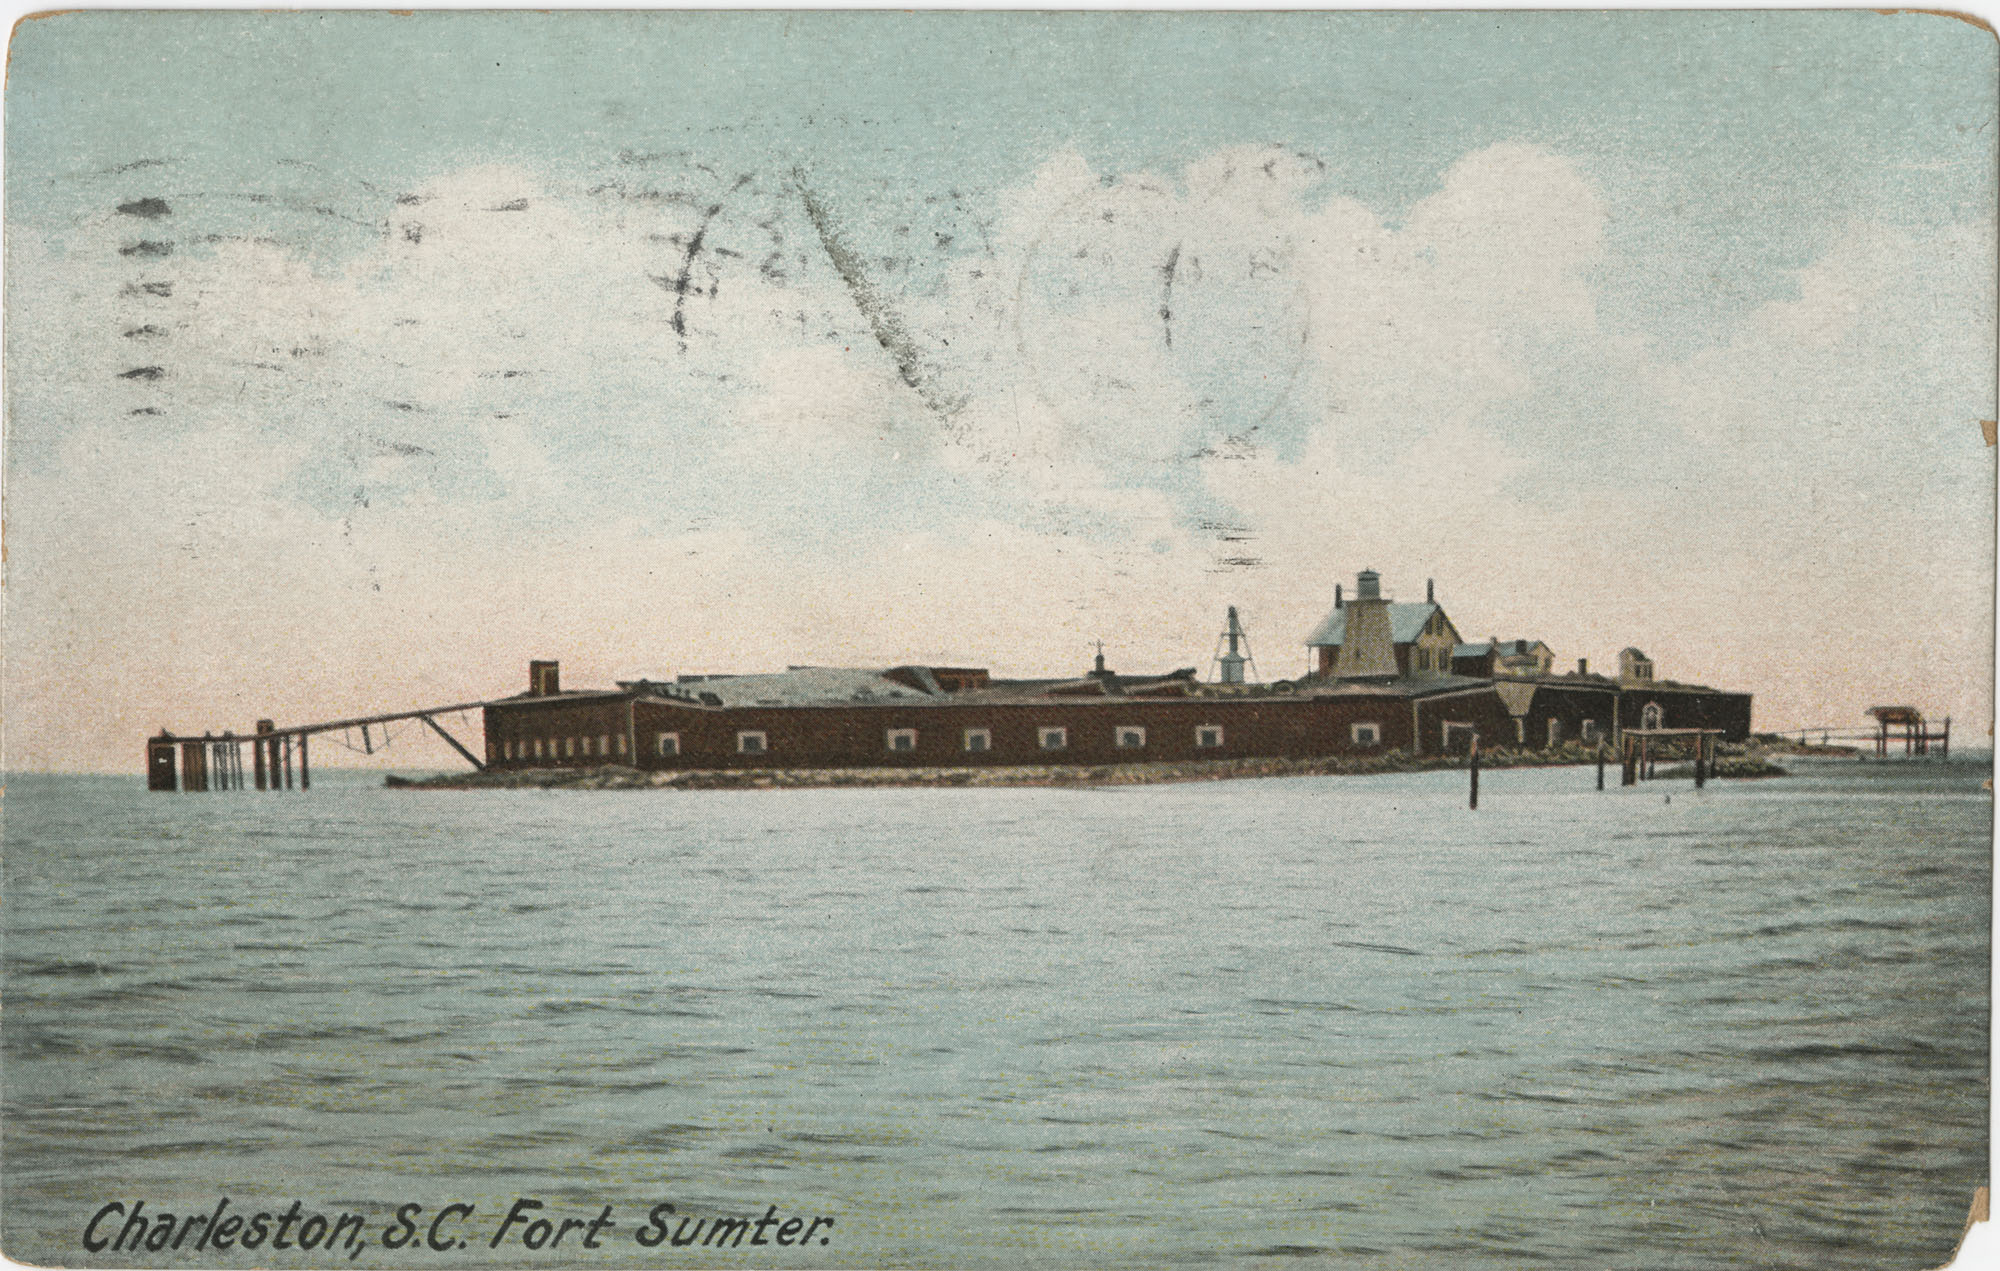 Charleston, S.C. Fort Sumter